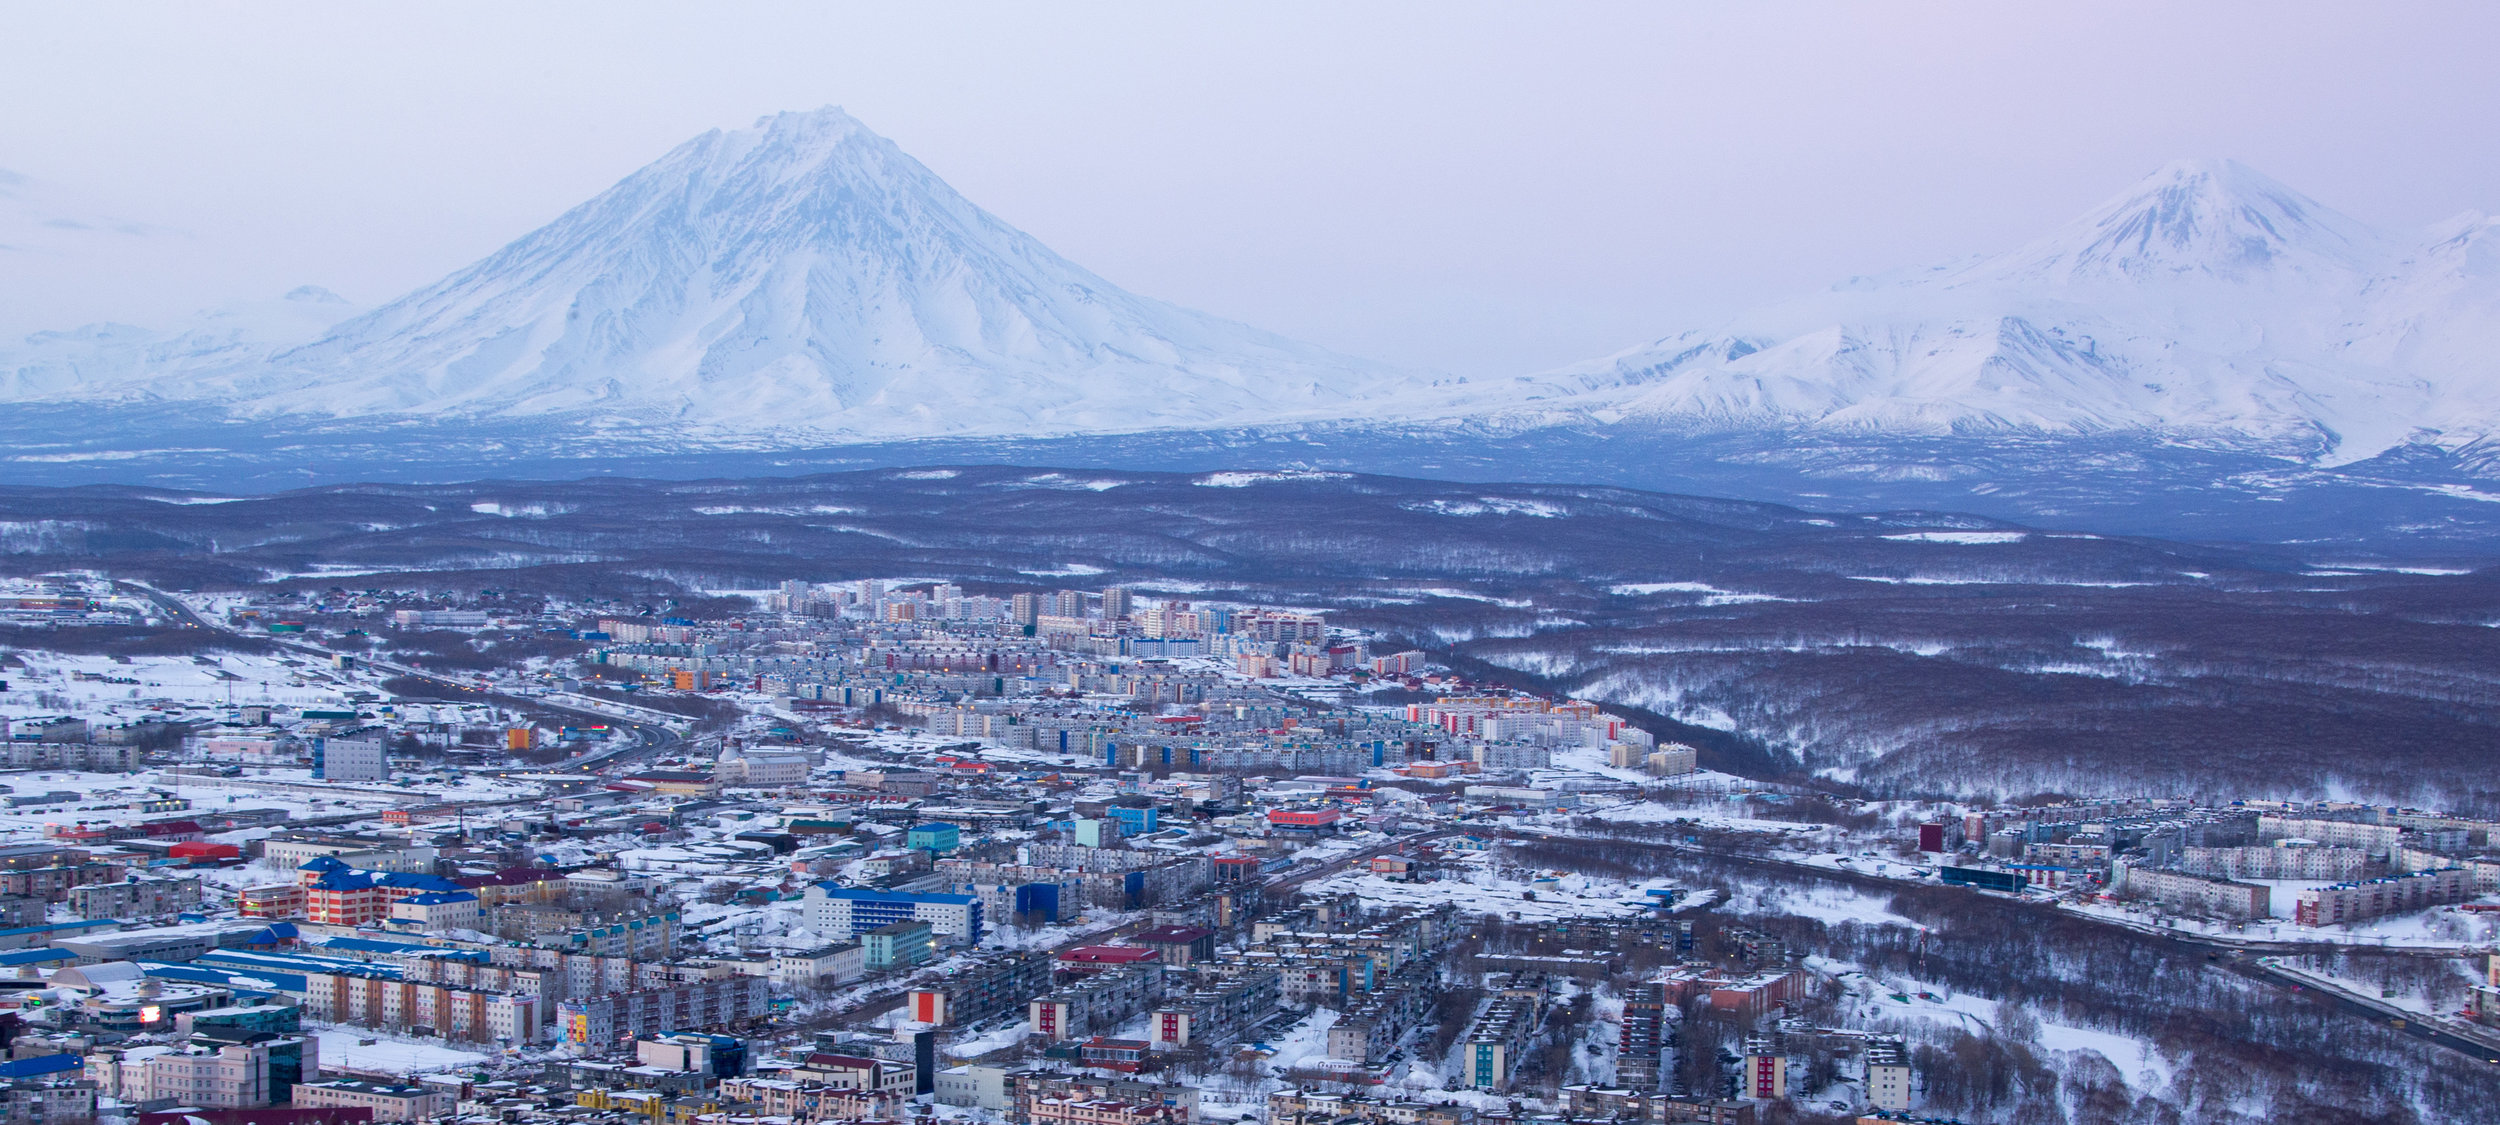 kamchatka-volcanoes-wide.jpg